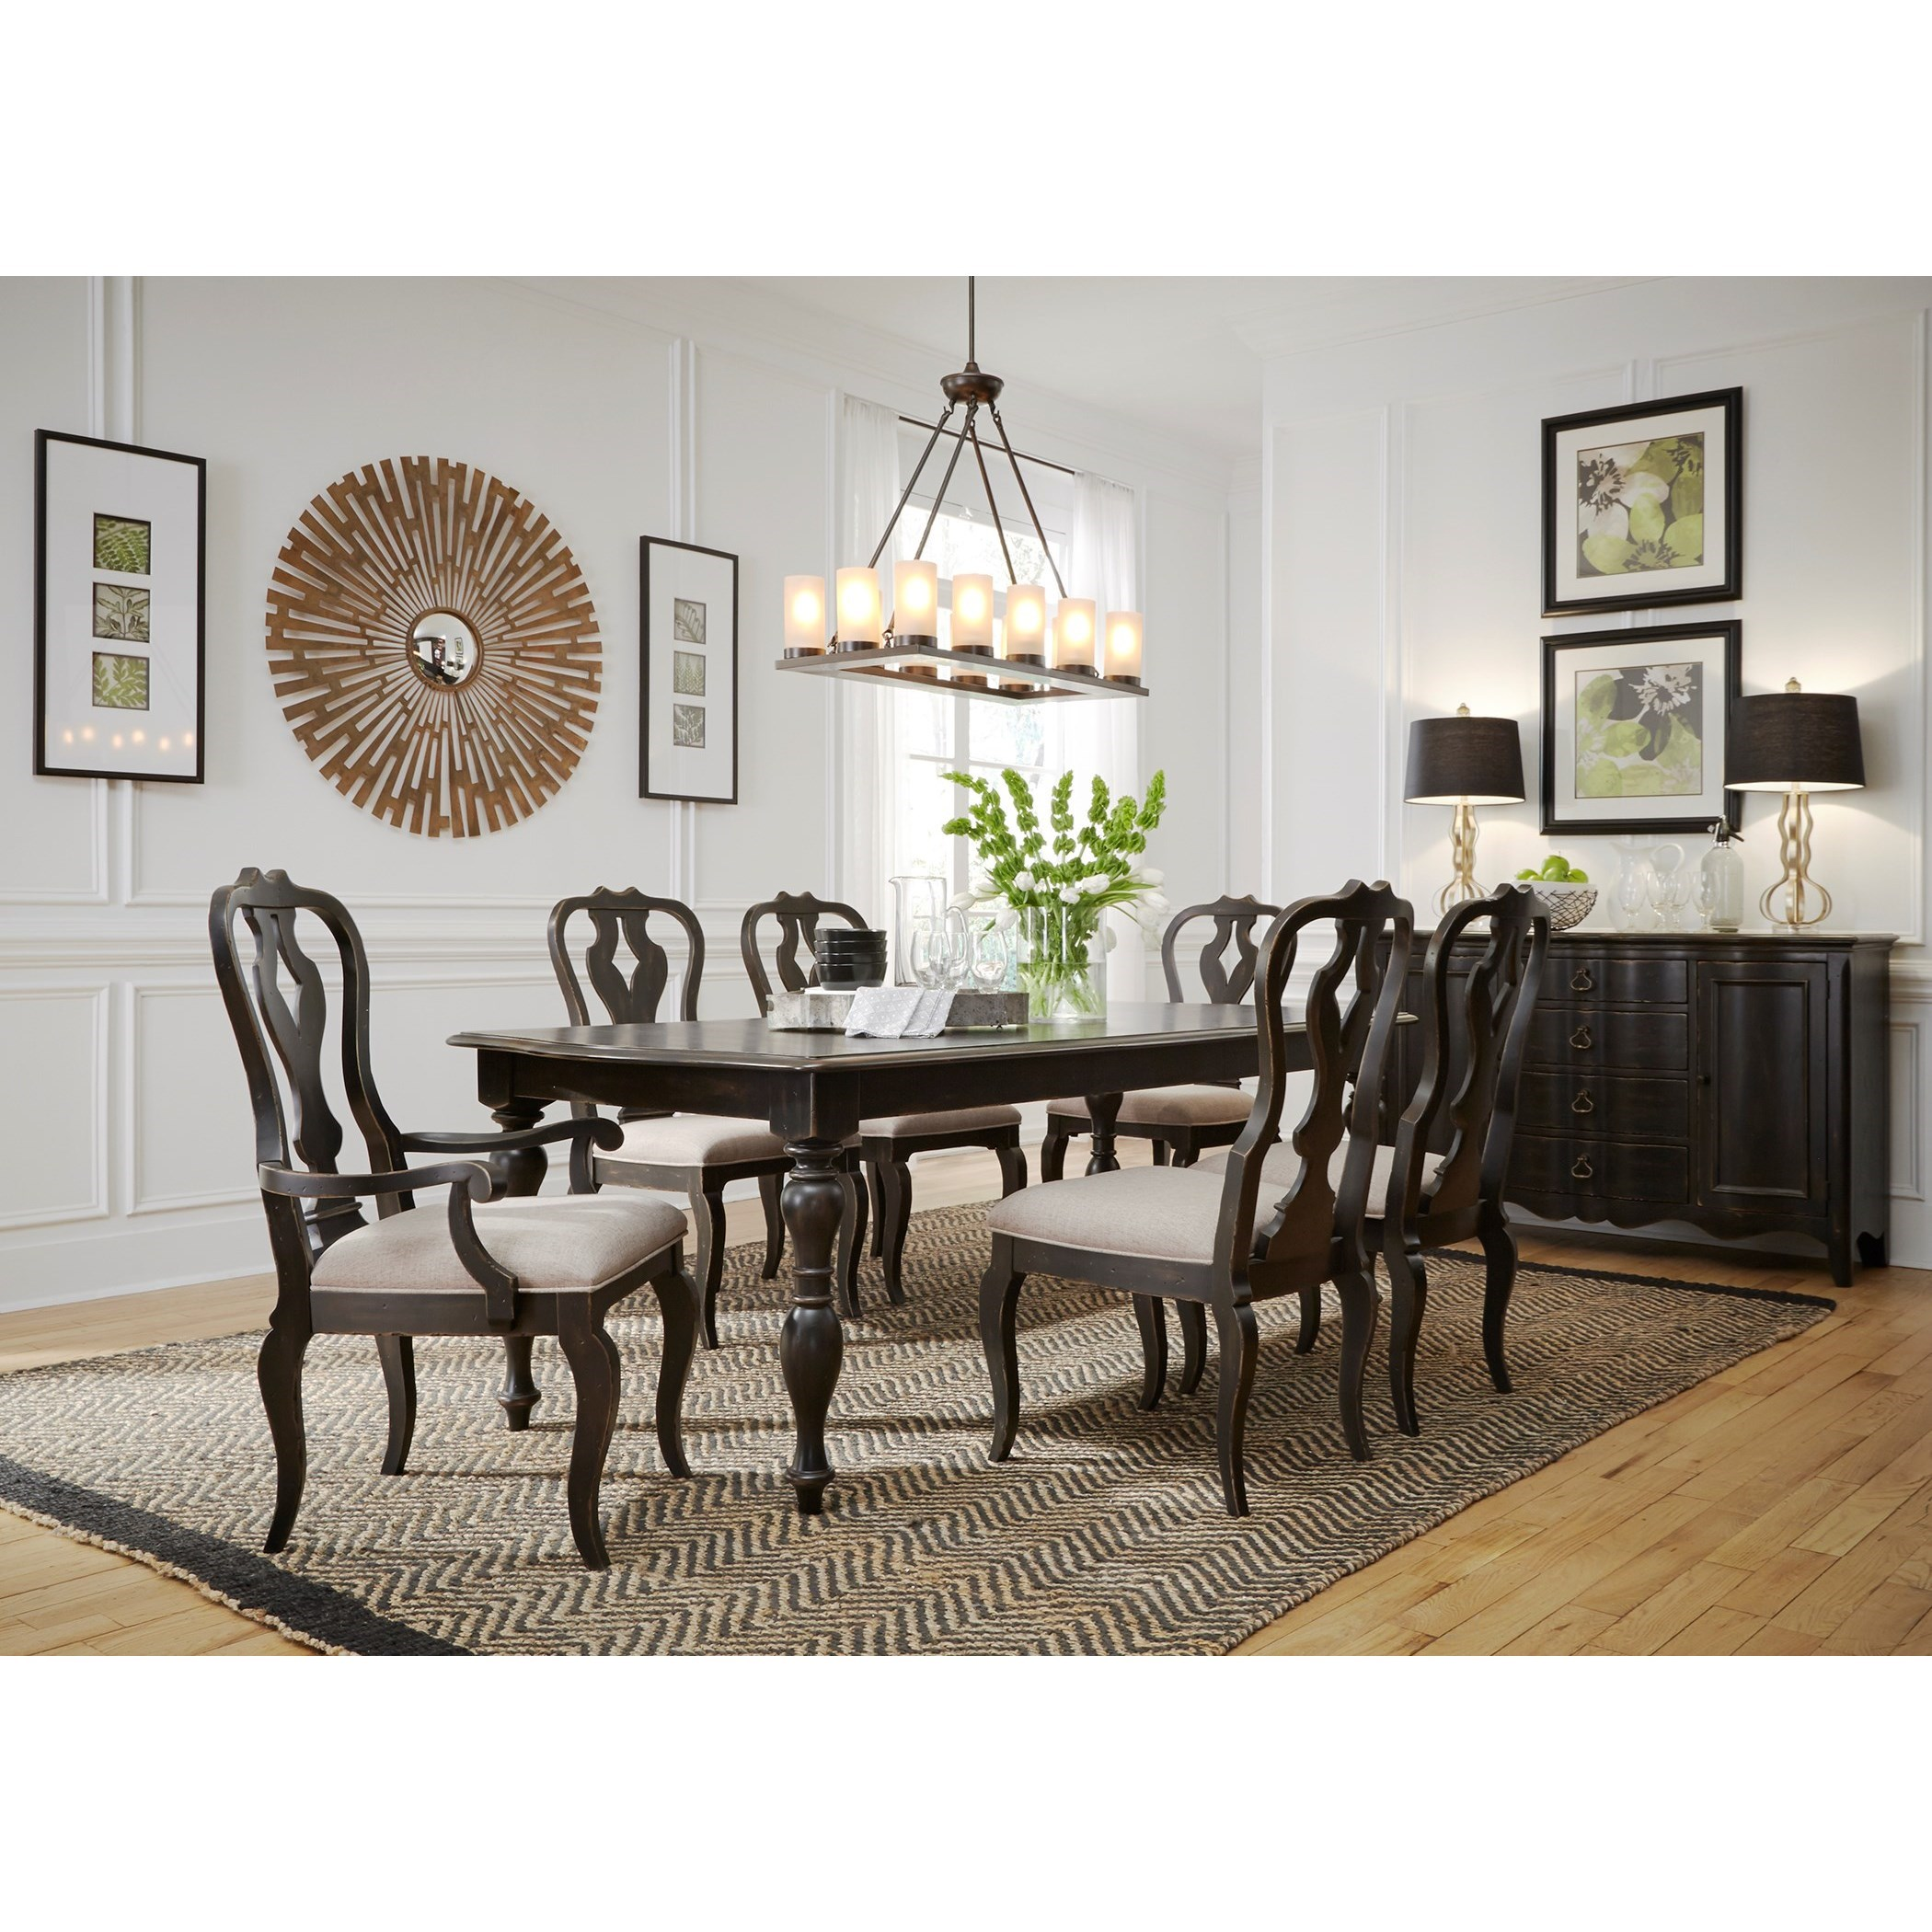 Chesapeake Table and Chair Set by Liberty Furniture at Northeast Factory Direct